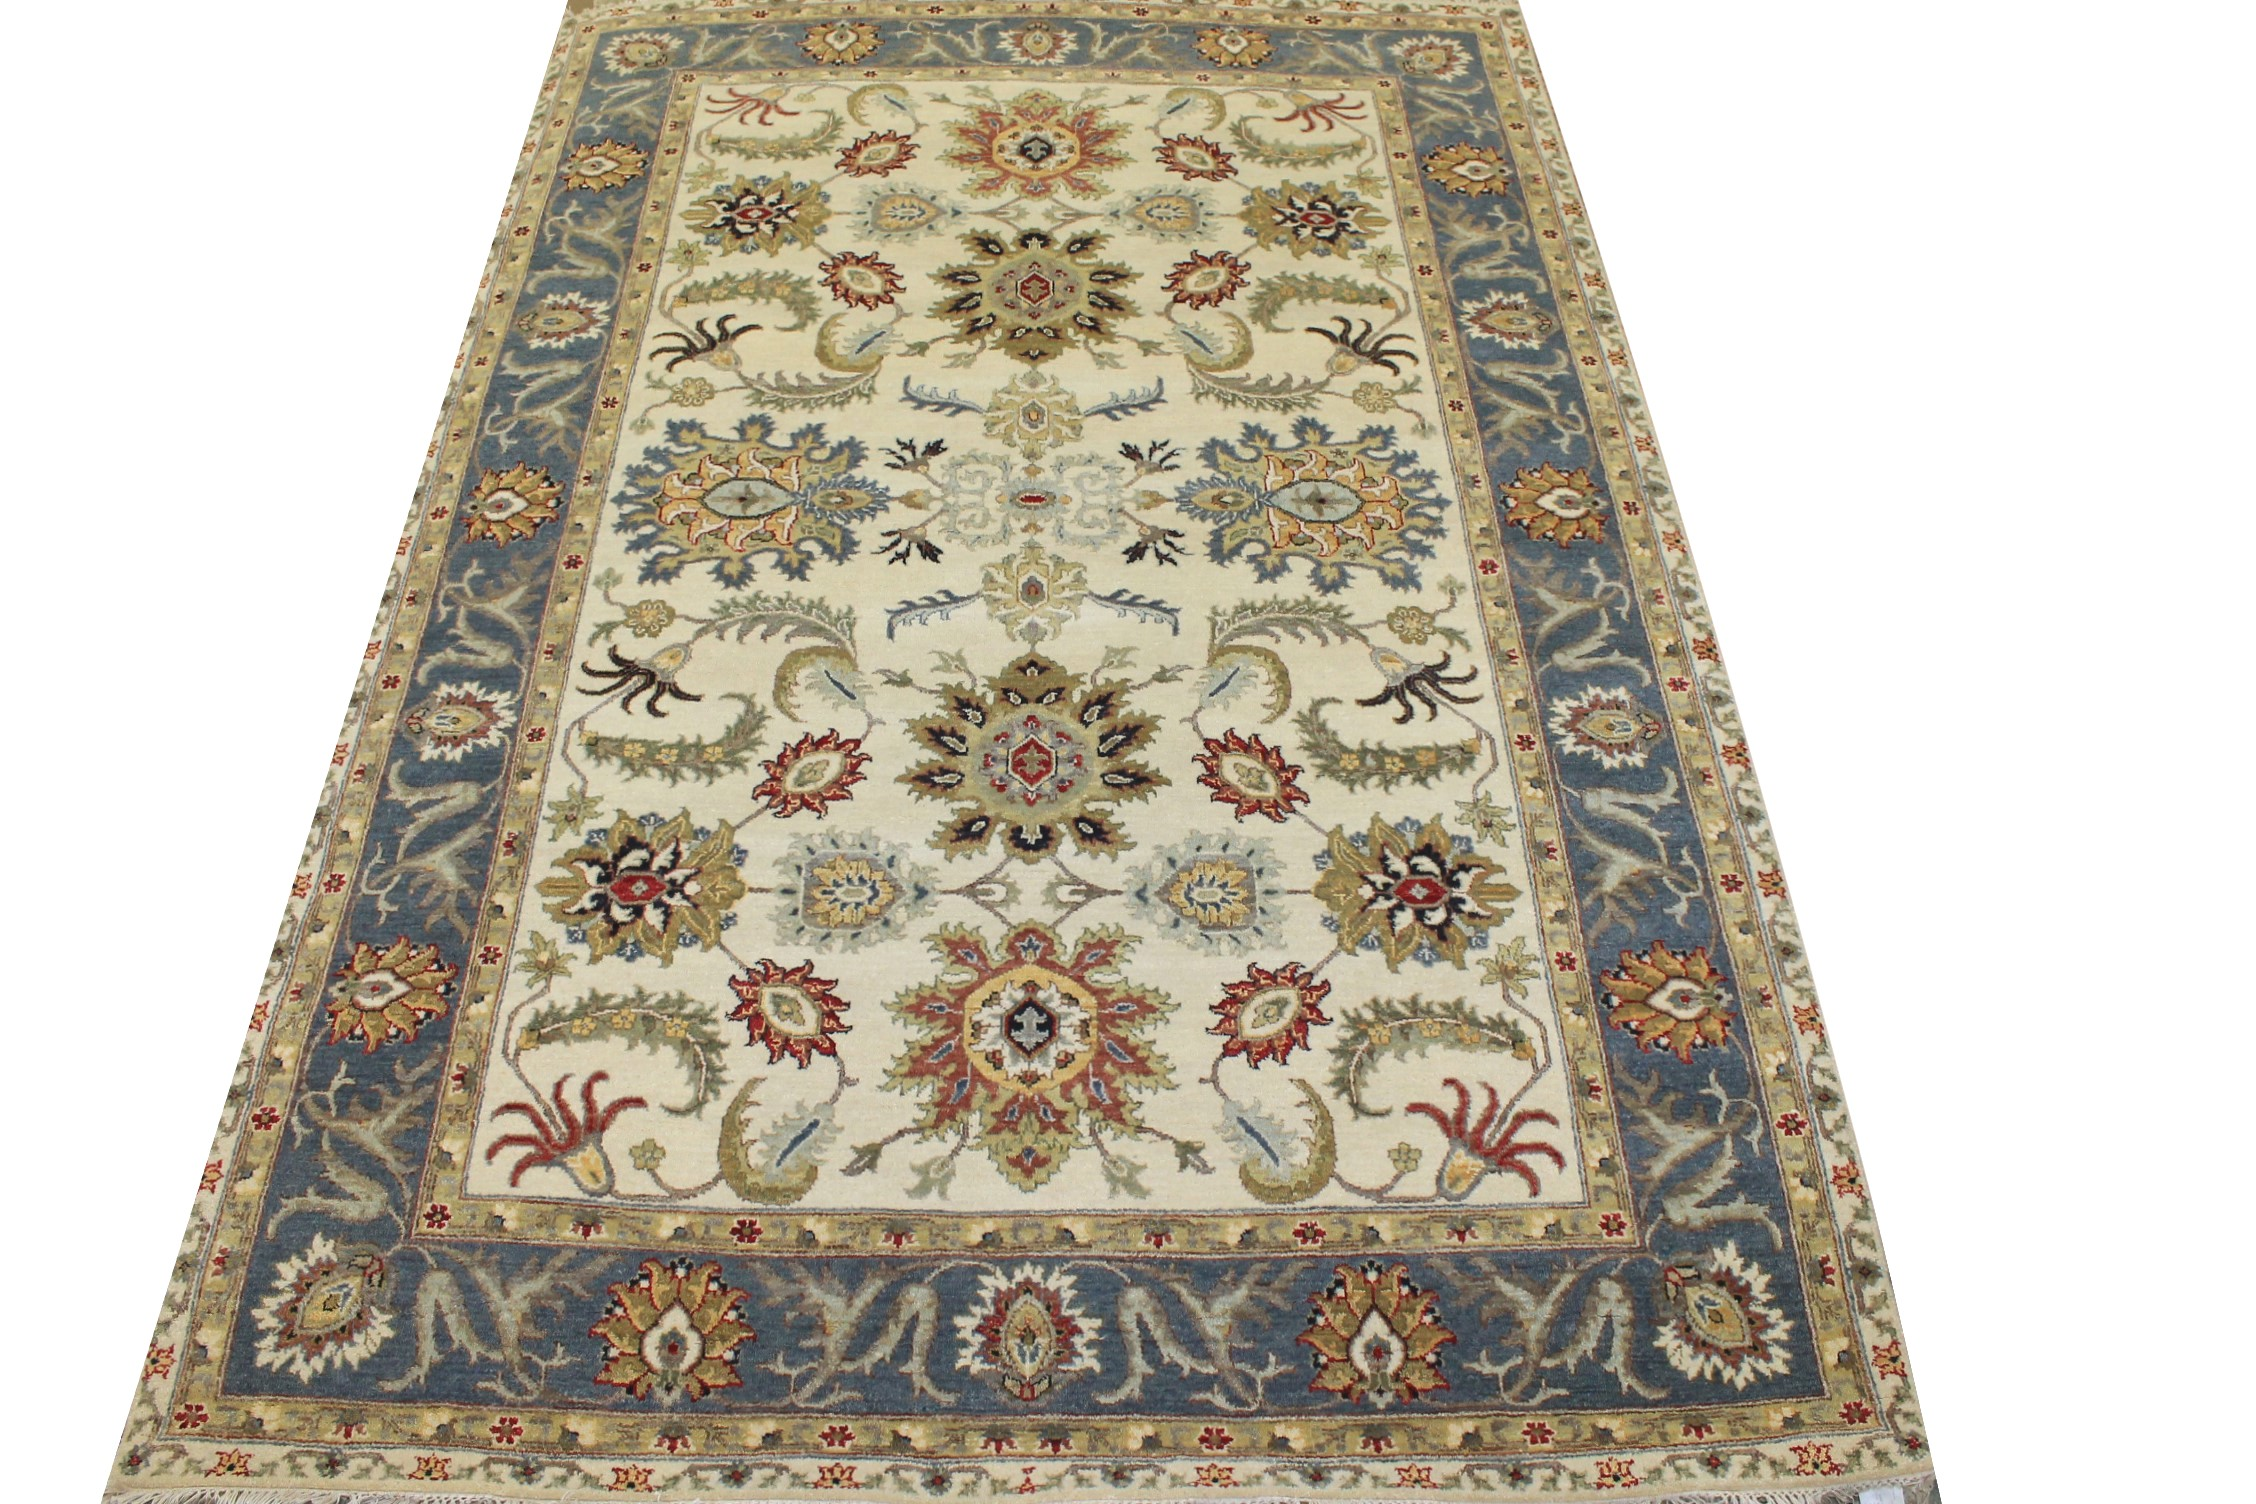 6x9 Traditional Hand Knotted Wool Area Rug - MR025262